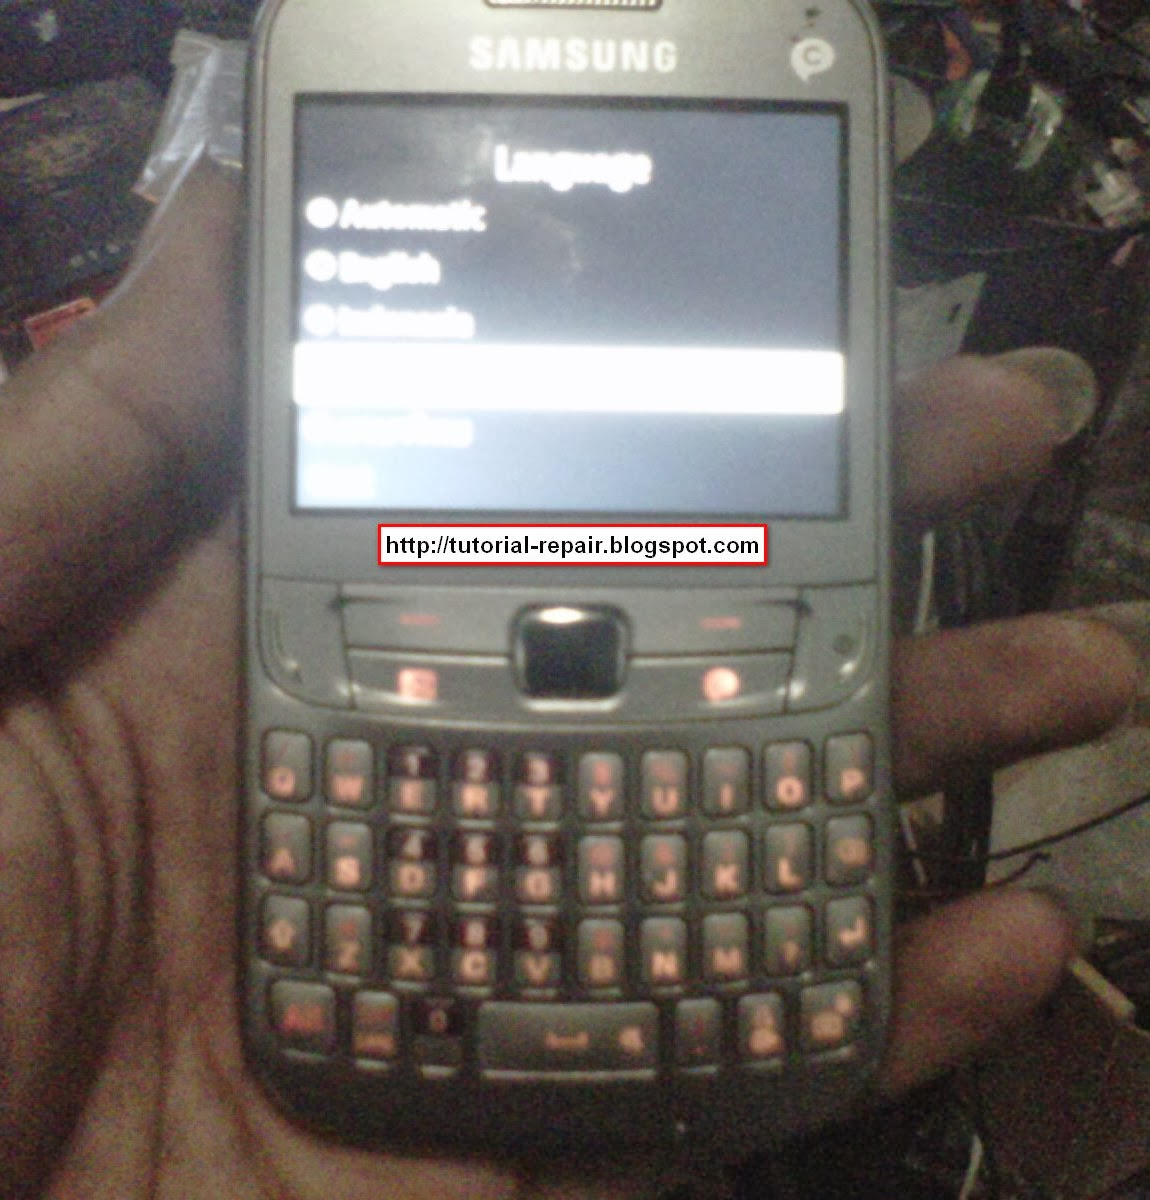 S3570 firmware free download